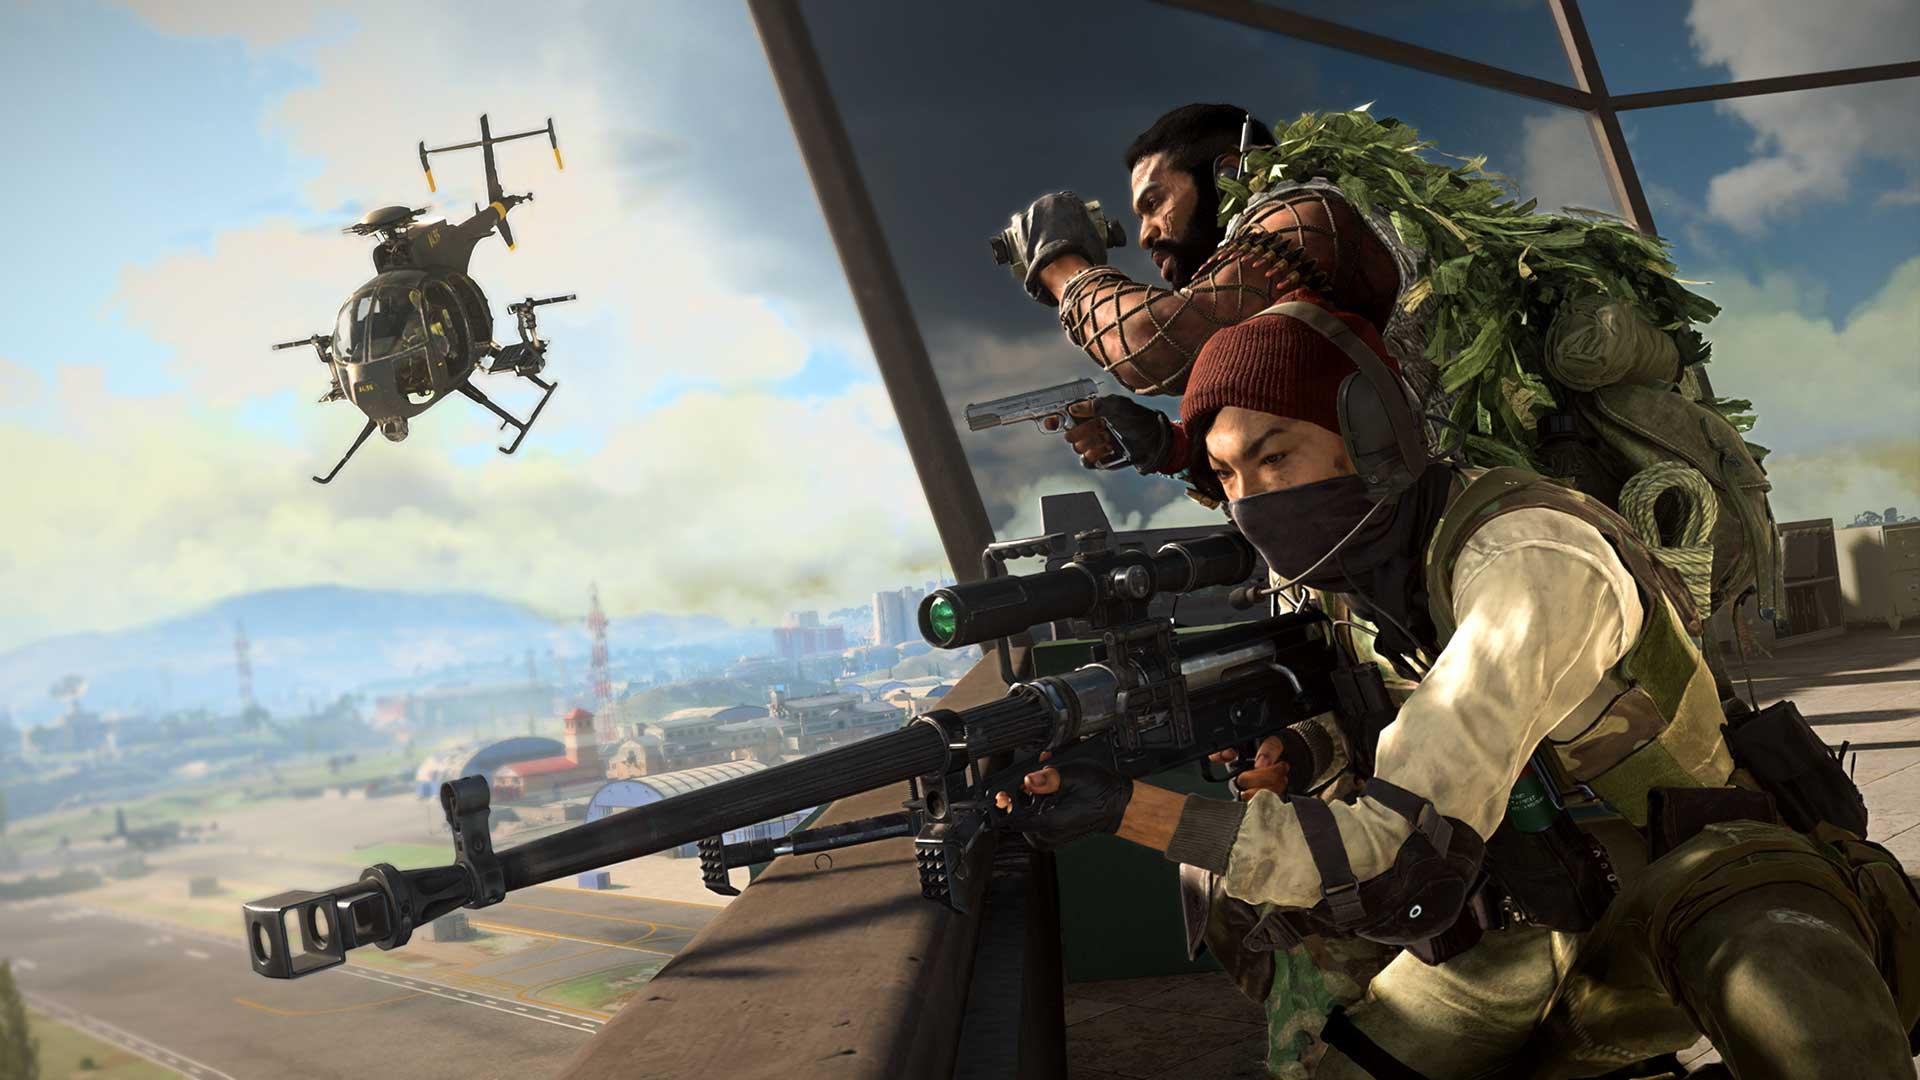 New Ricochet Anti-cheat System Arrives in Call of Duty Warzone Next Month